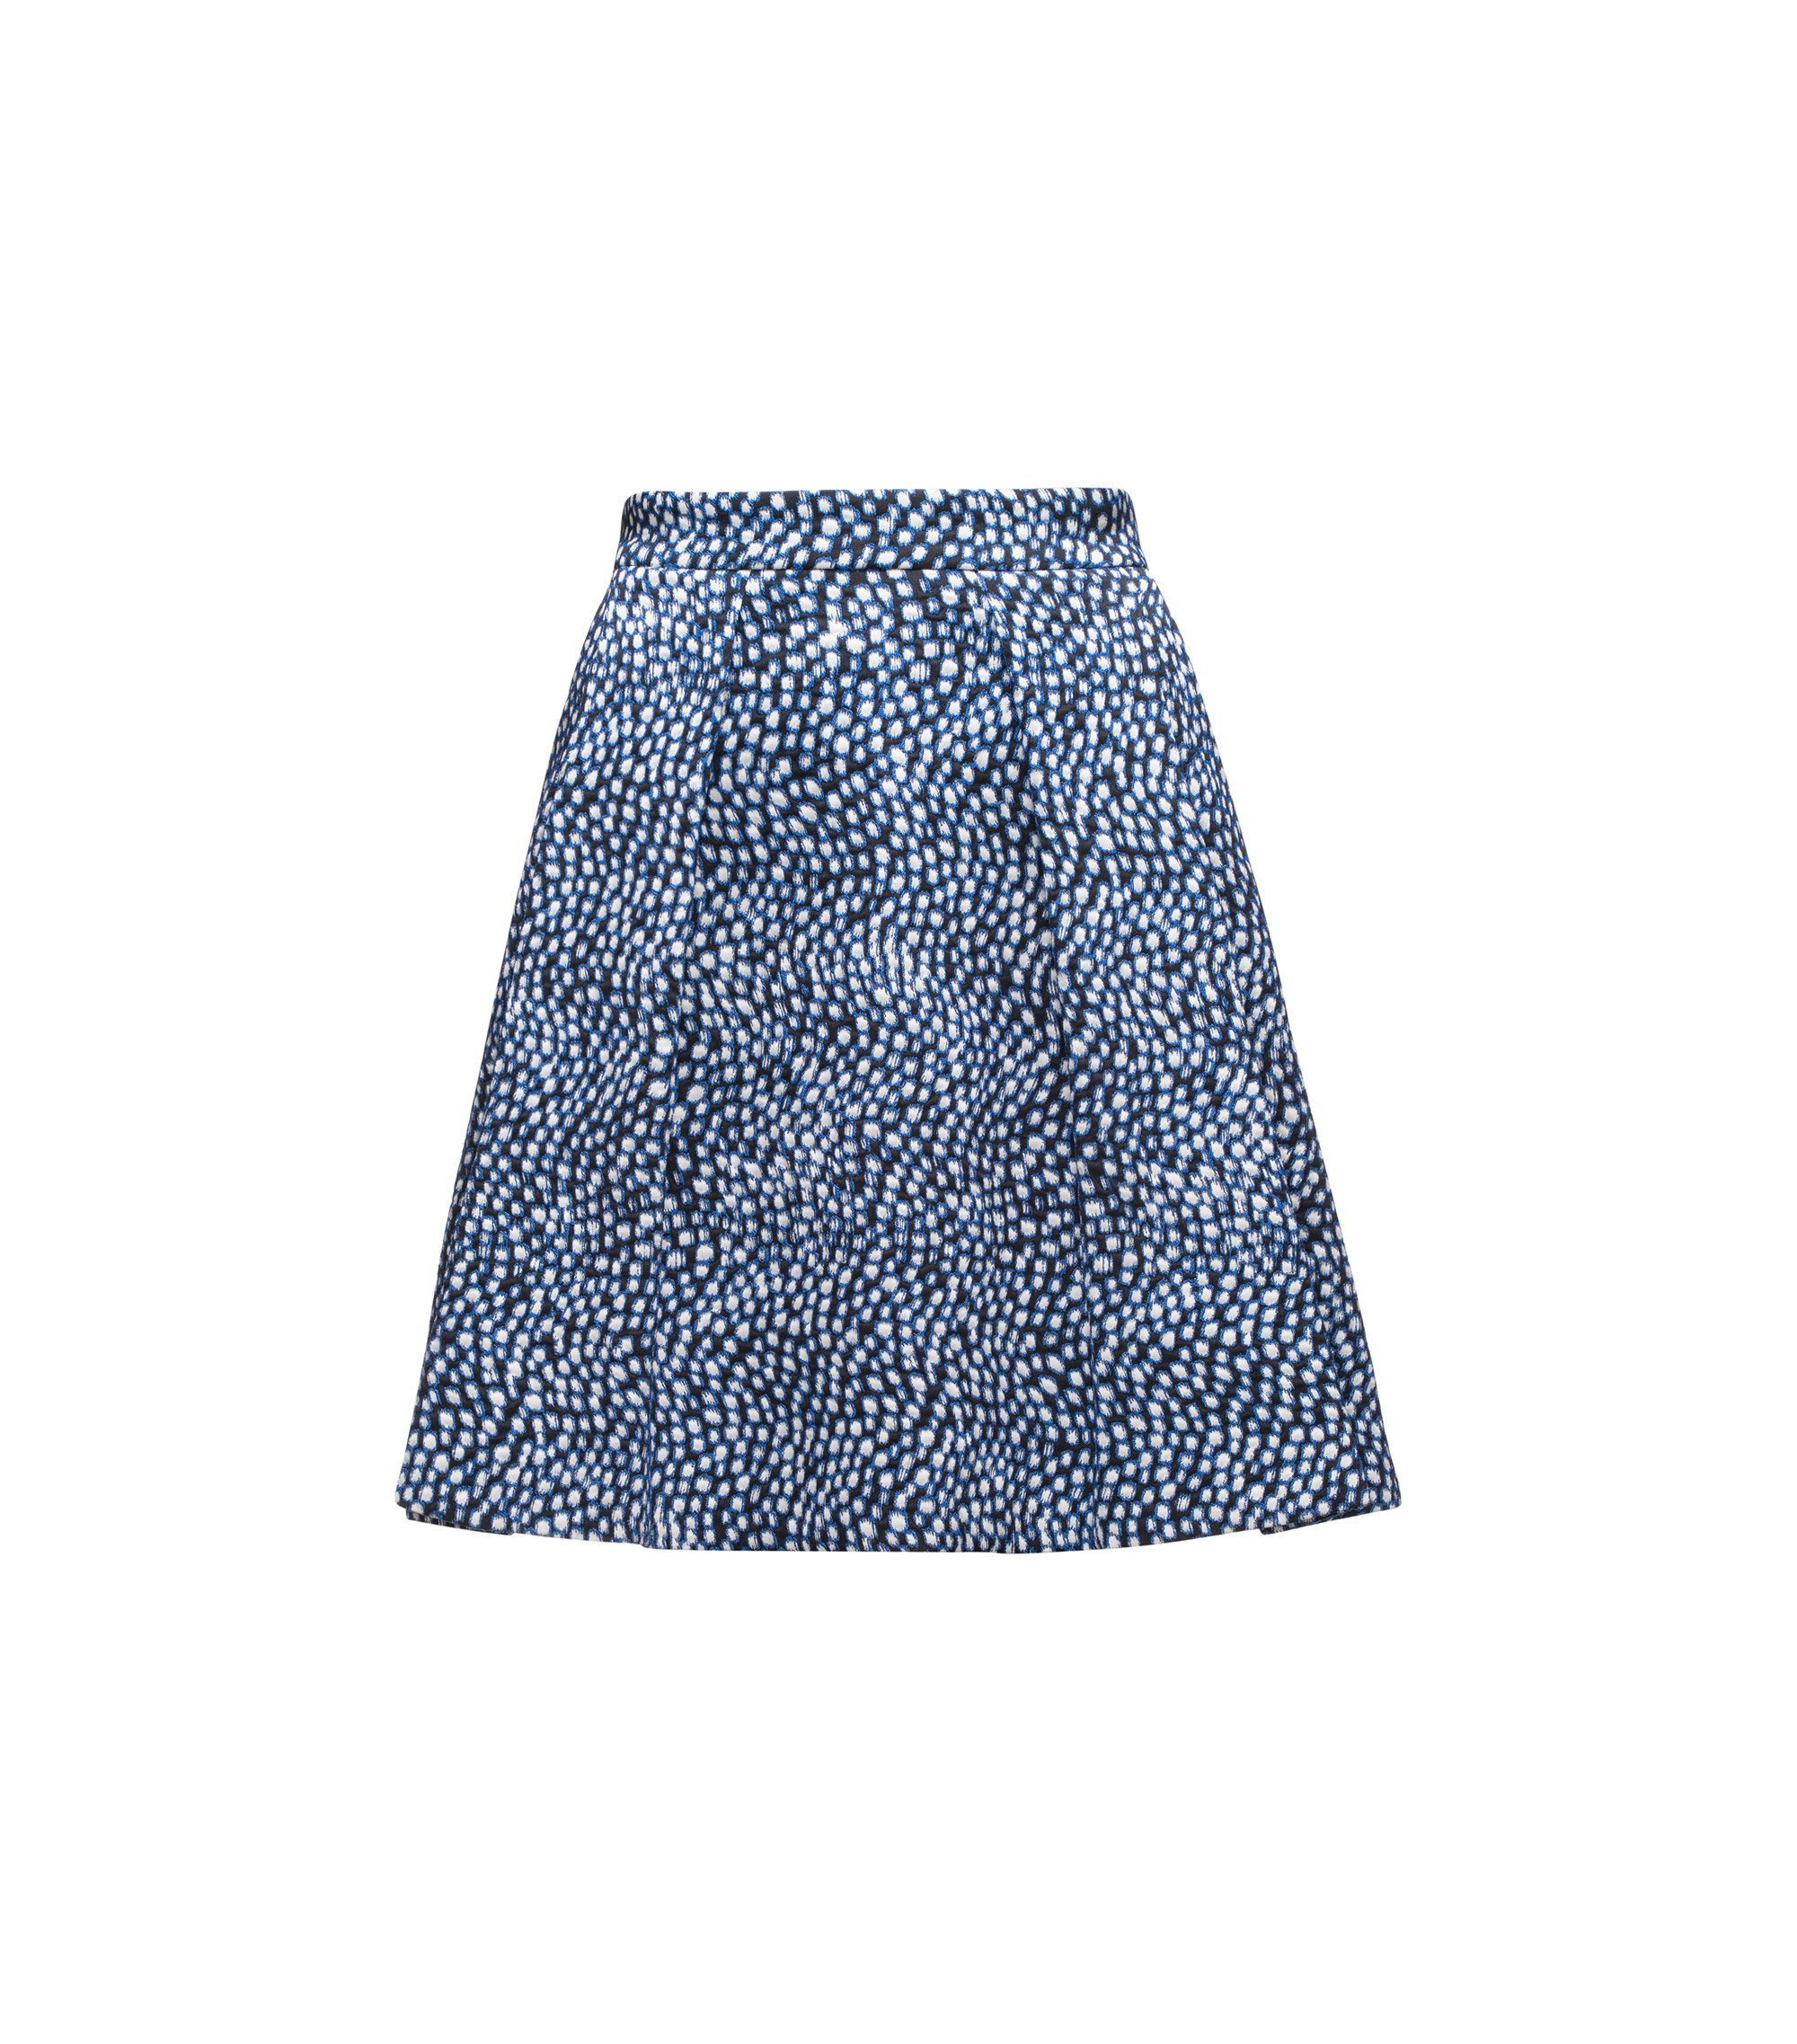 A-line skirt in stretch cotton-blend jacquard, Patterned